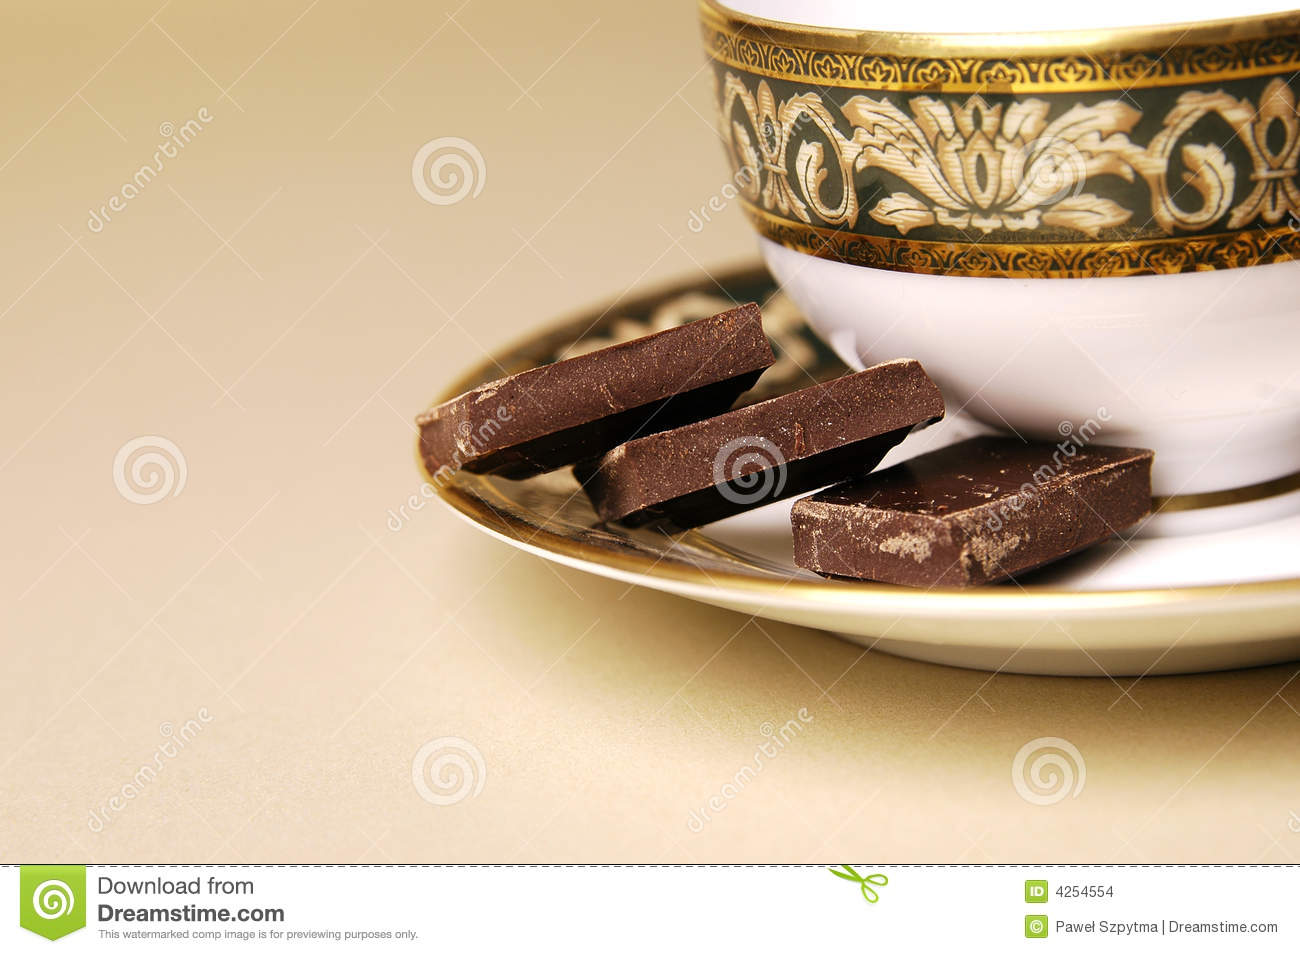 coffe time sweets and fruit royalty free stock photo 62098665. Black Bedroom Furniture Sets. Home Design Ideas